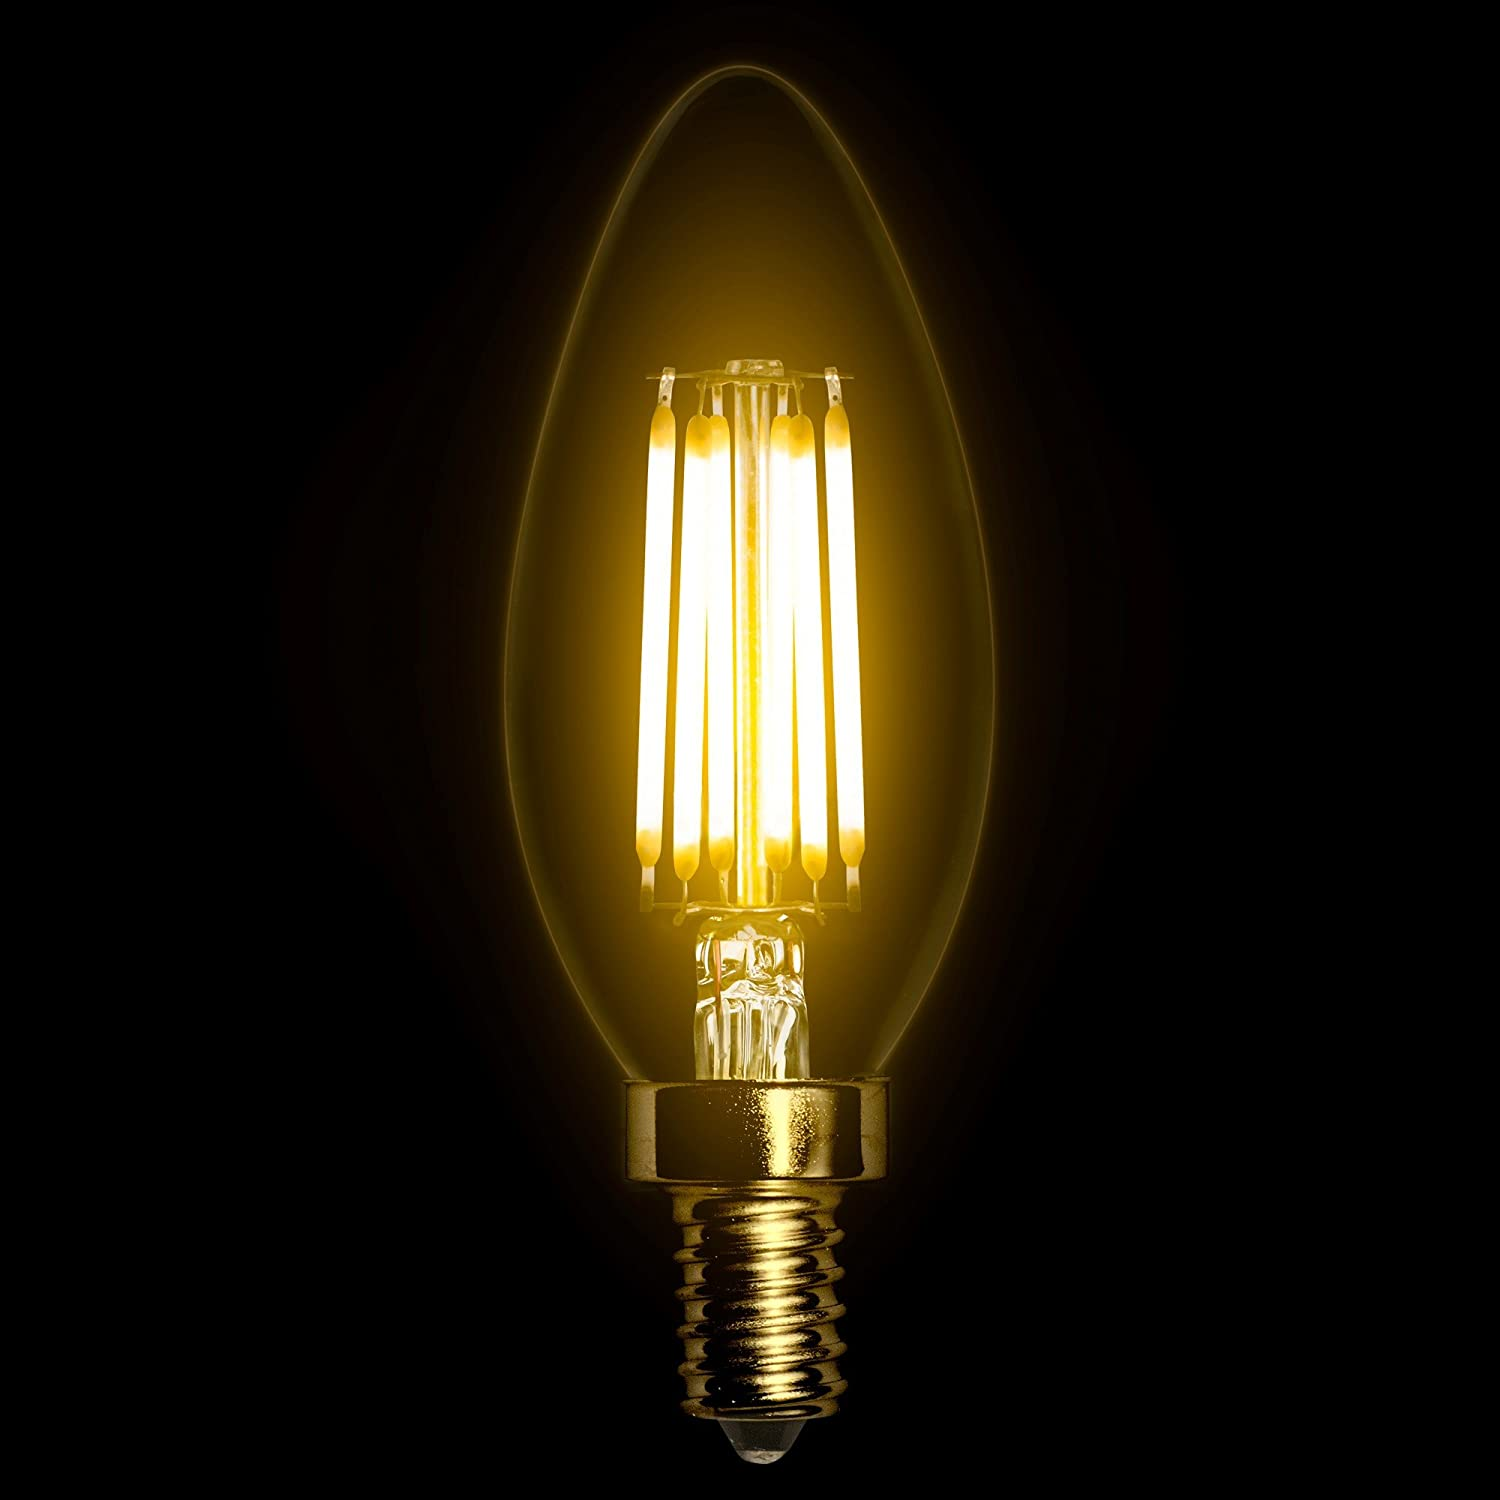 TriGlow T95083 LED 5-Watt UL Listed Clear Flame Tip Filament Bulb E12 Candelabra Base 500 Lumen DIMMABLE 2700K Warm White 60W Replacement